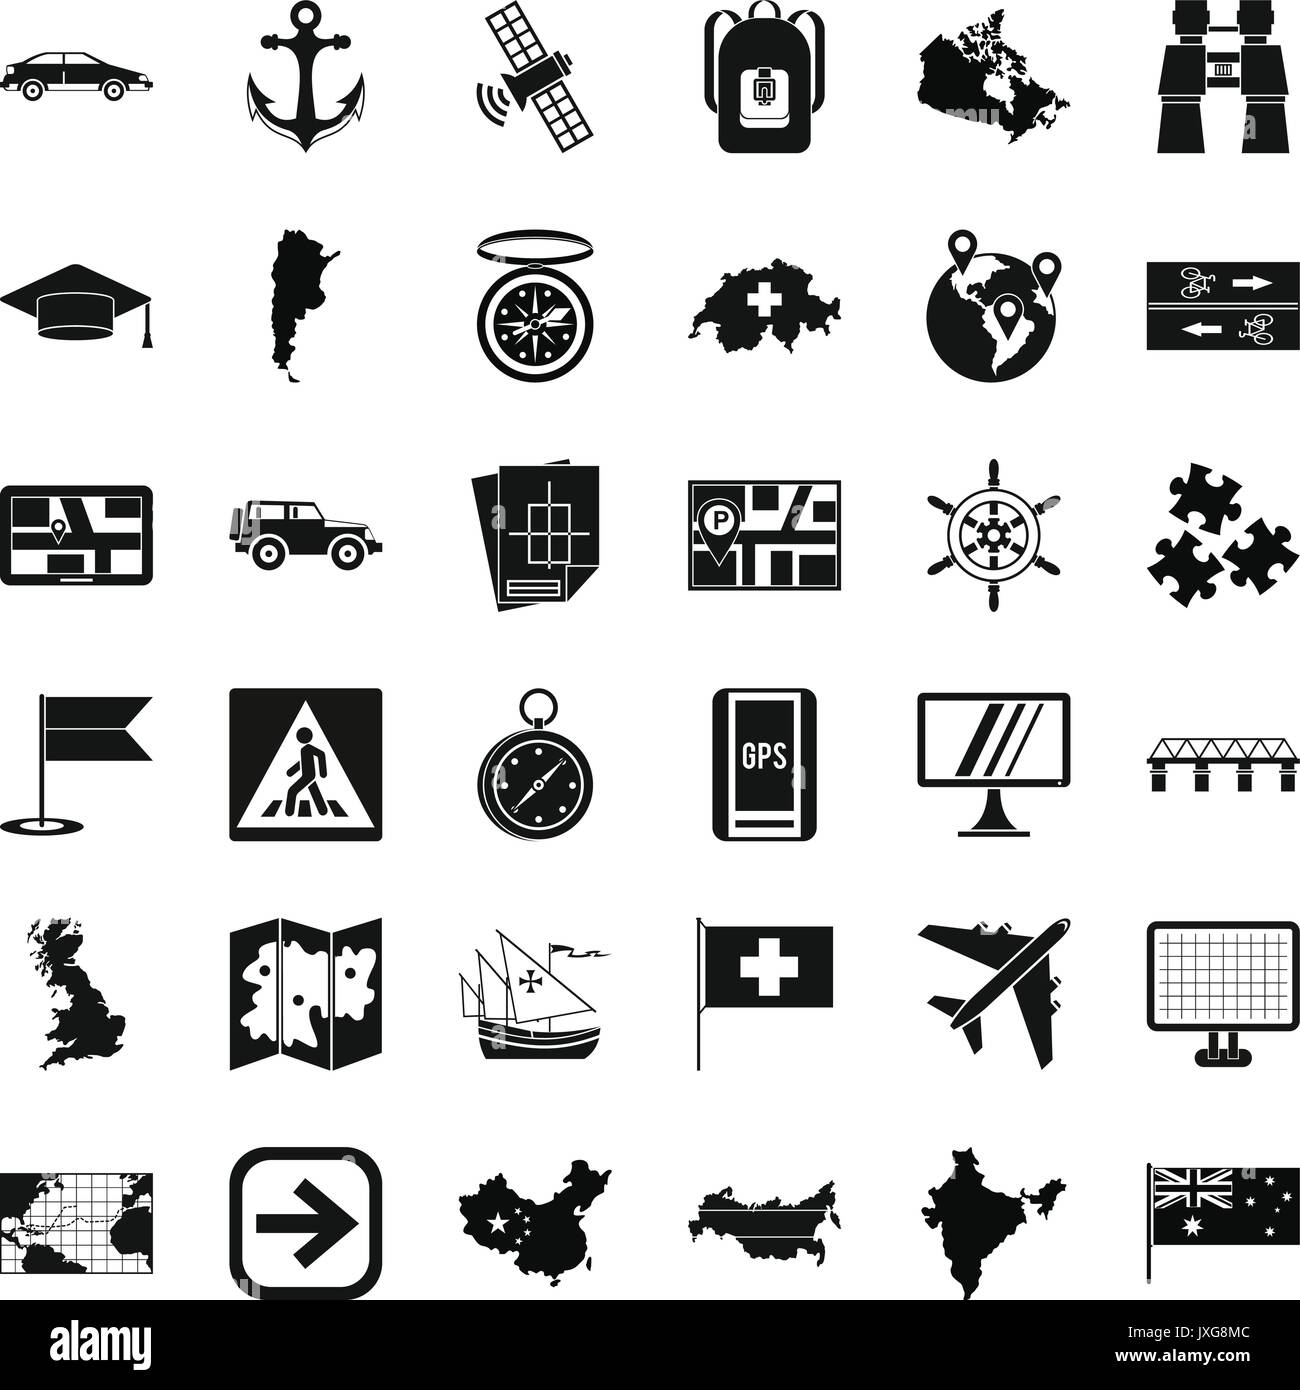 Cartography icons set, simple style - Stock Image